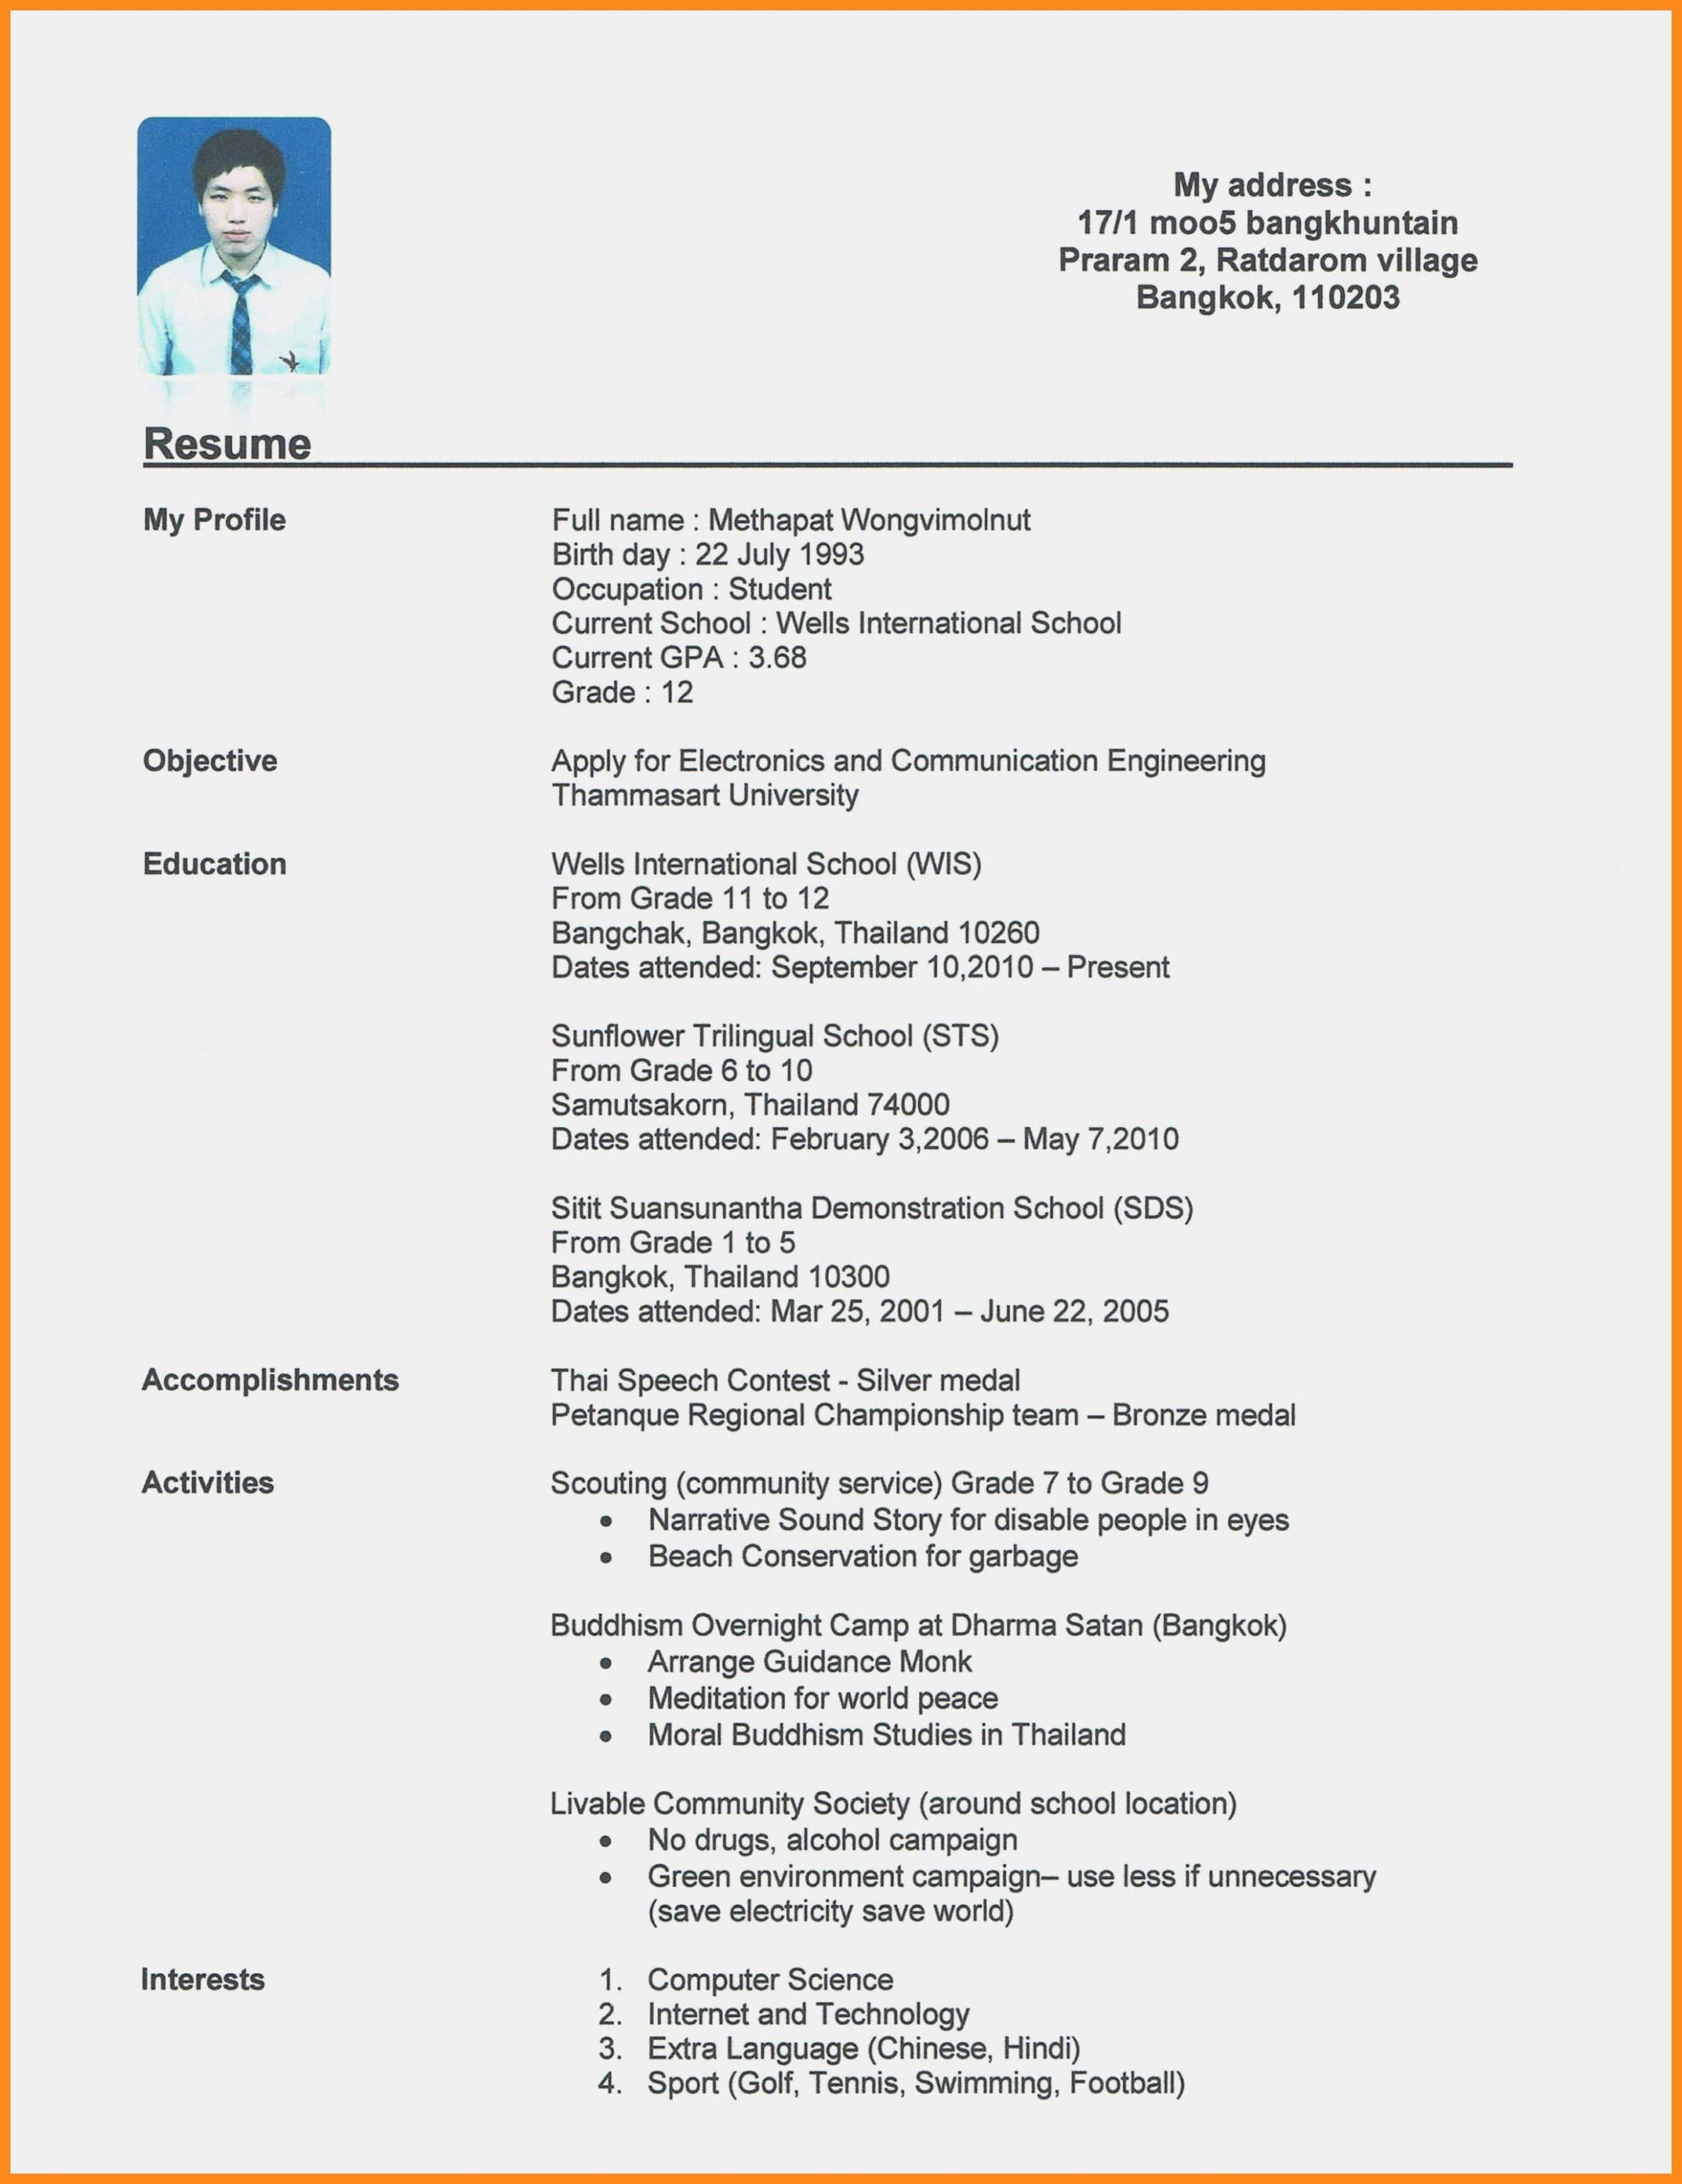 resume template for first job addictionary application seeker sample amazing example Resume Job Application Job Seeker Resume Sample